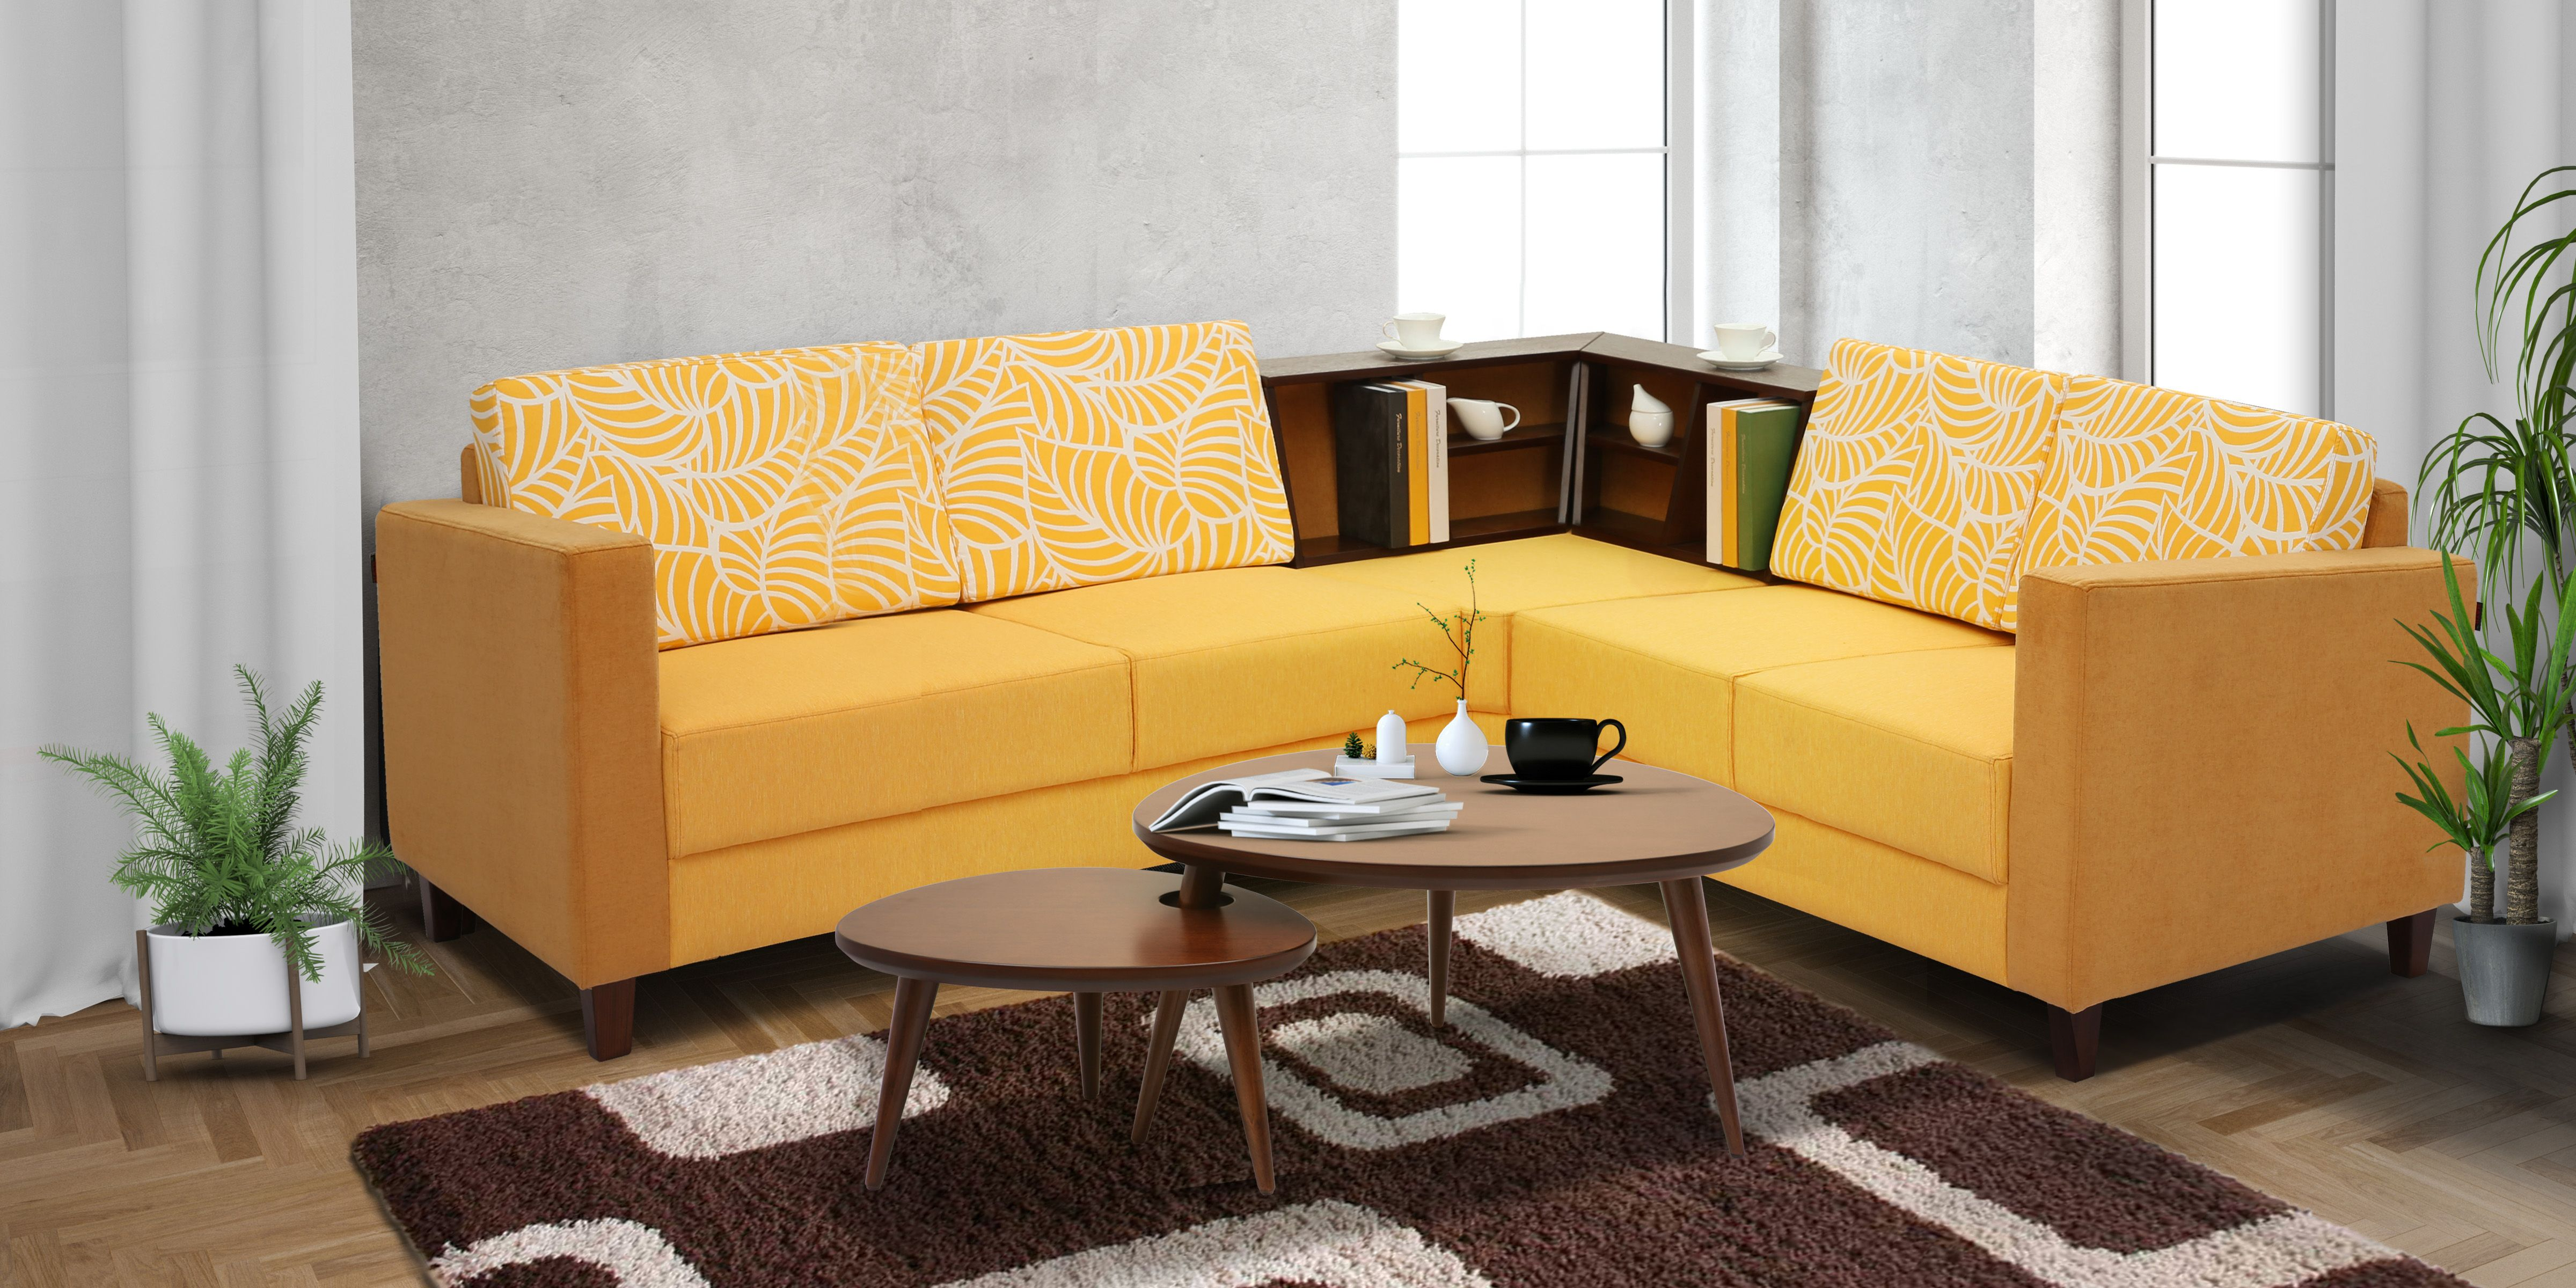 L Shaped Sofa Price In Bd In 2020 L Shaped Sofa Sofa Price Furniture